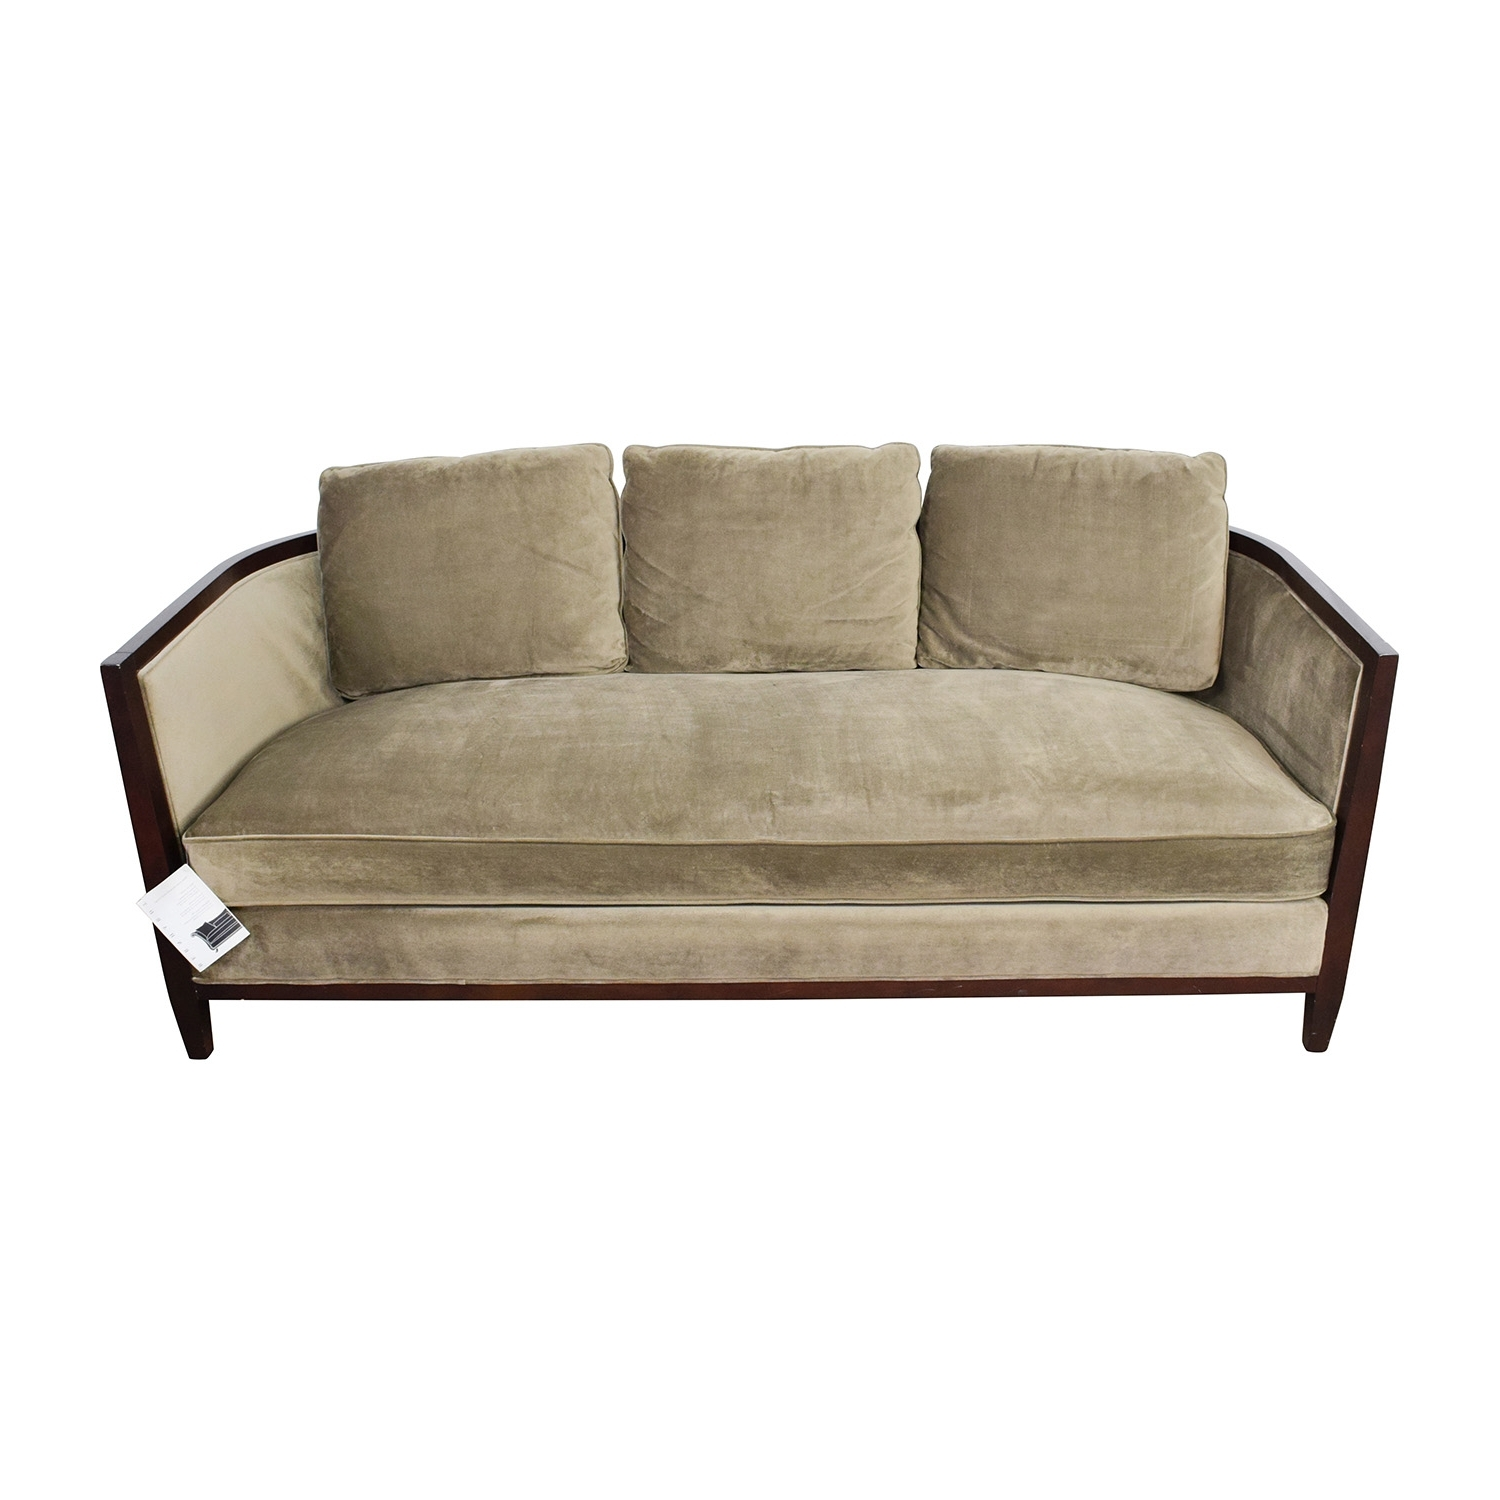 [%85% Off – Bernhardt Bernhardt Tan Single Cushion Sofa / Sofas Inside Famous Single Sofas|Single Sofas Throughout Well Known 85% Off – Bernhardt Bernhardt Tan Single Cushion Sofa / Sofas|Popular Single Sofas For 85% Off – Bernhardt Bernhardt Tan Single Cushion Sofa / Sofas|2017 85% Off – Bernhardt Bernhardt Tan Single Cushion Sofa / Sofas Pertaining To Single Sofas%] (View 1 of 15)